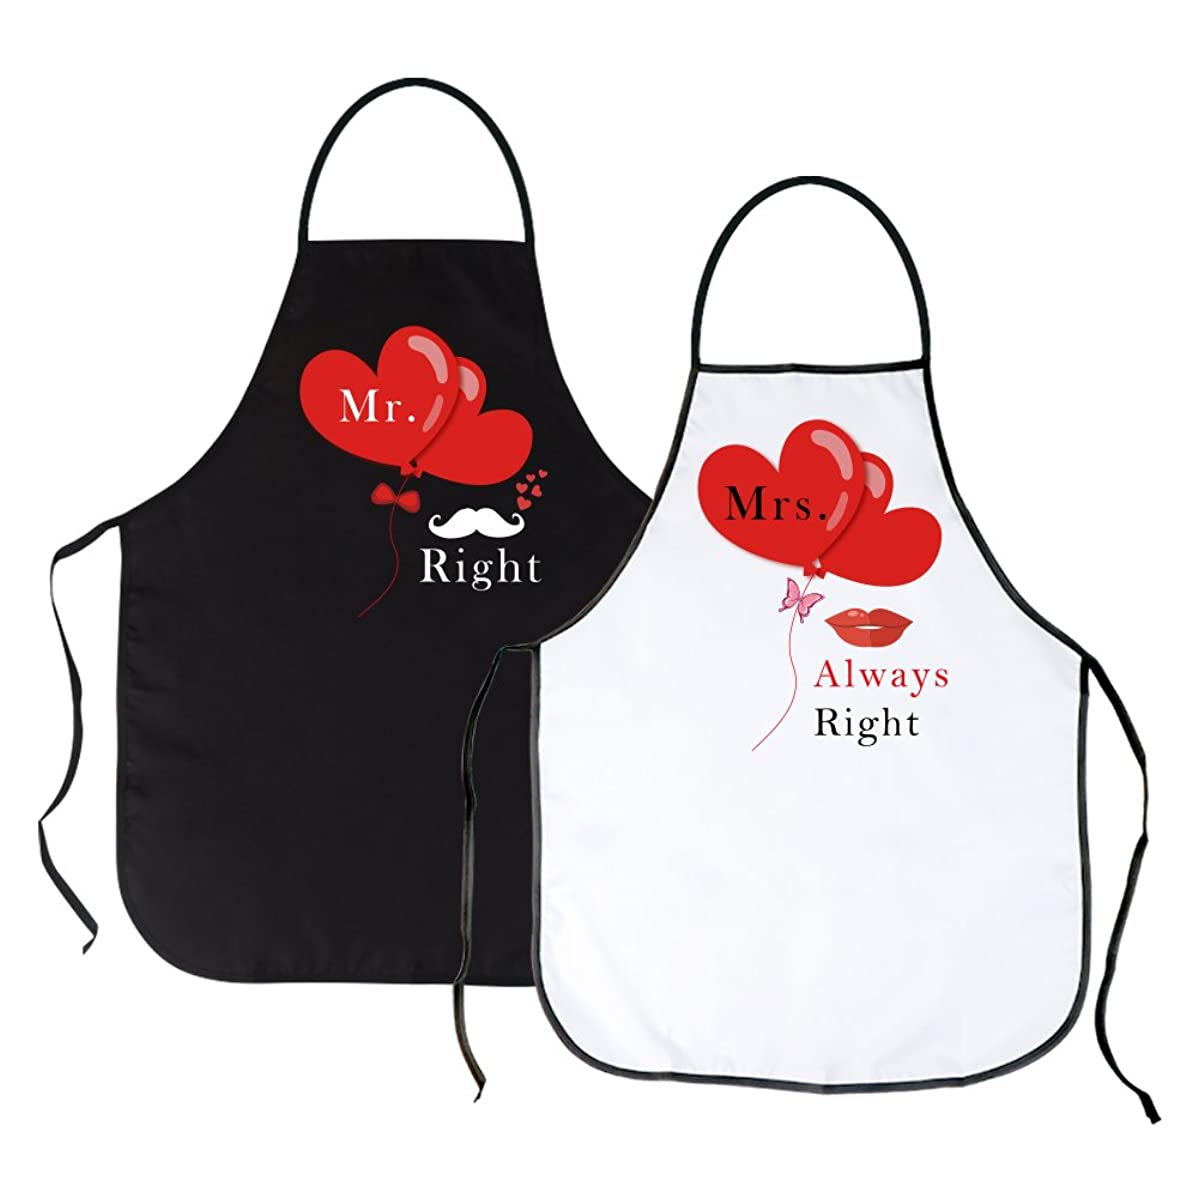 OurWarm 2 Pack Mr. Right & Mrs. Always Right Kitchen Aprons for Wedding Engagement Gift, Couples Aprons for Cooking